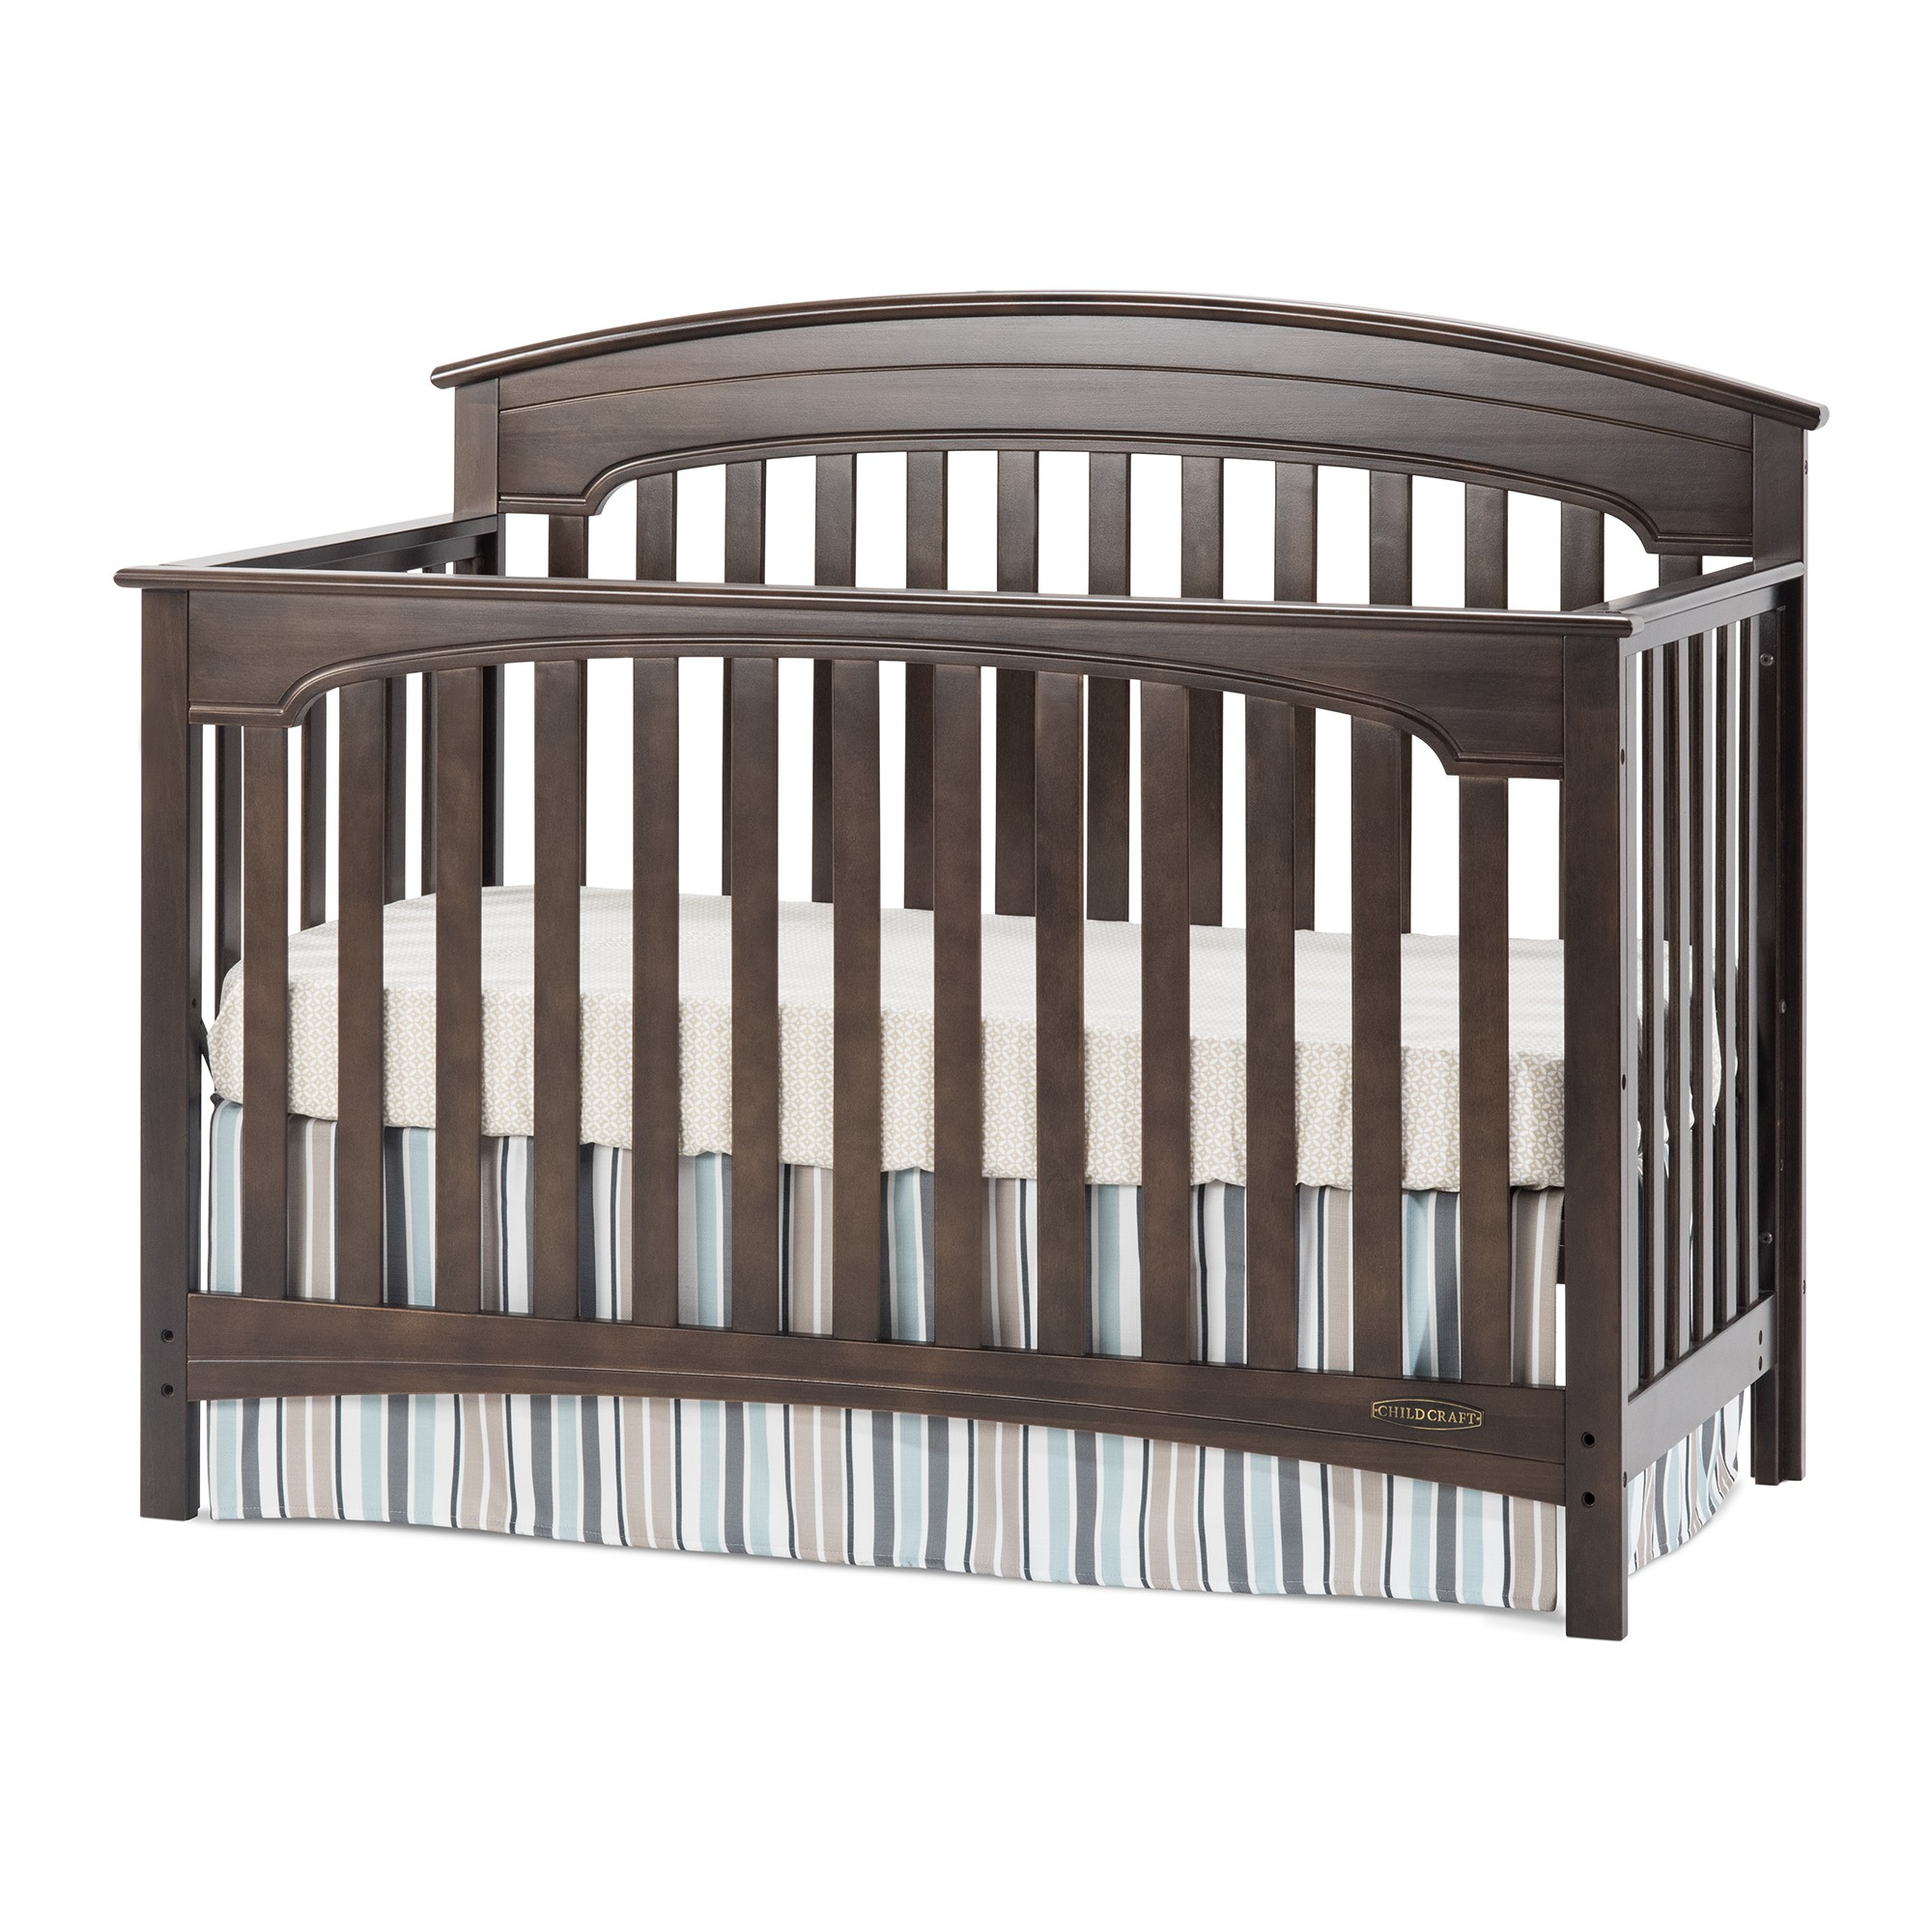 Charming Baby Cache Heritage Lifetime Convertible Crib for Best Baby Crib Choice: Baby Cache Montana | Baby Cache Heritage Lifetime Convertible Crib | Cache Baby Crib